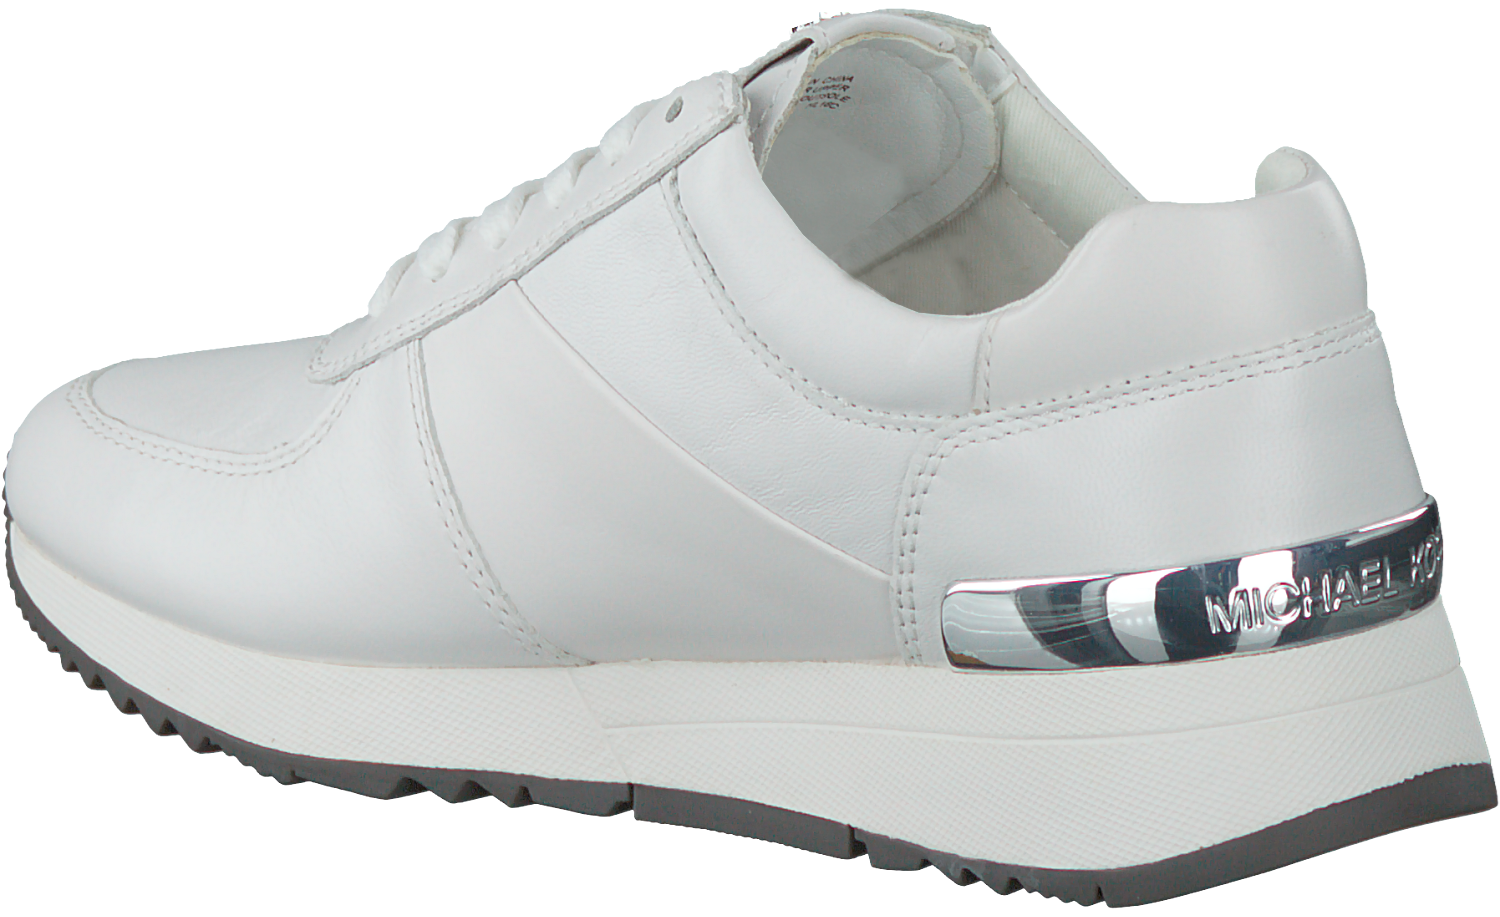 8107431c206 Witte MICHAEL KORS Sneakers ALLIE TRAINER. MICHAEL KORS. -70%. Previous